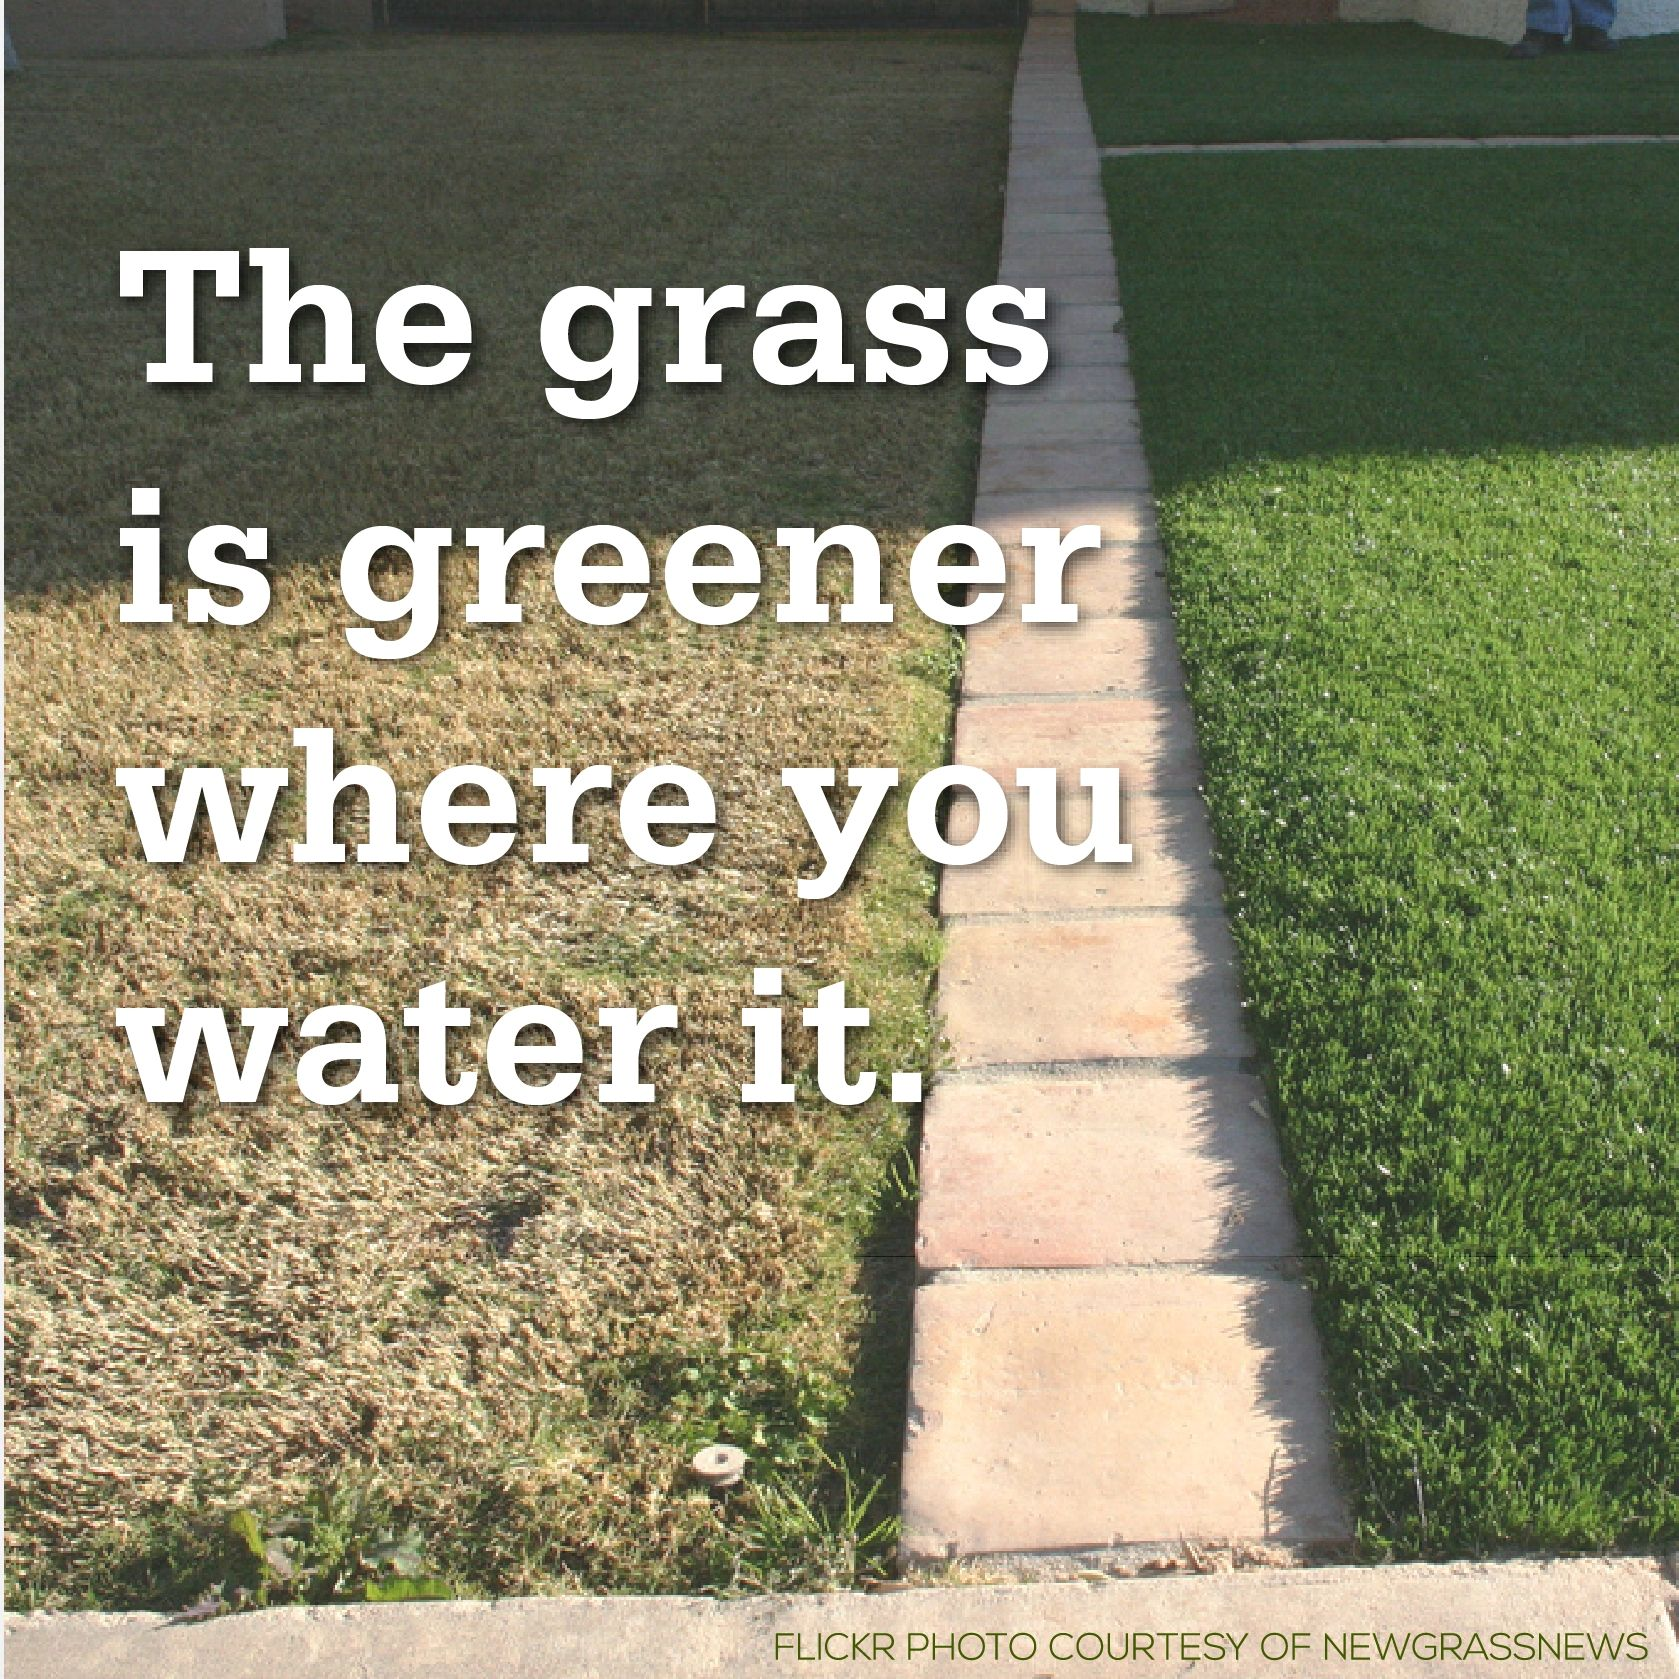 The grass is not always greener on the other side.